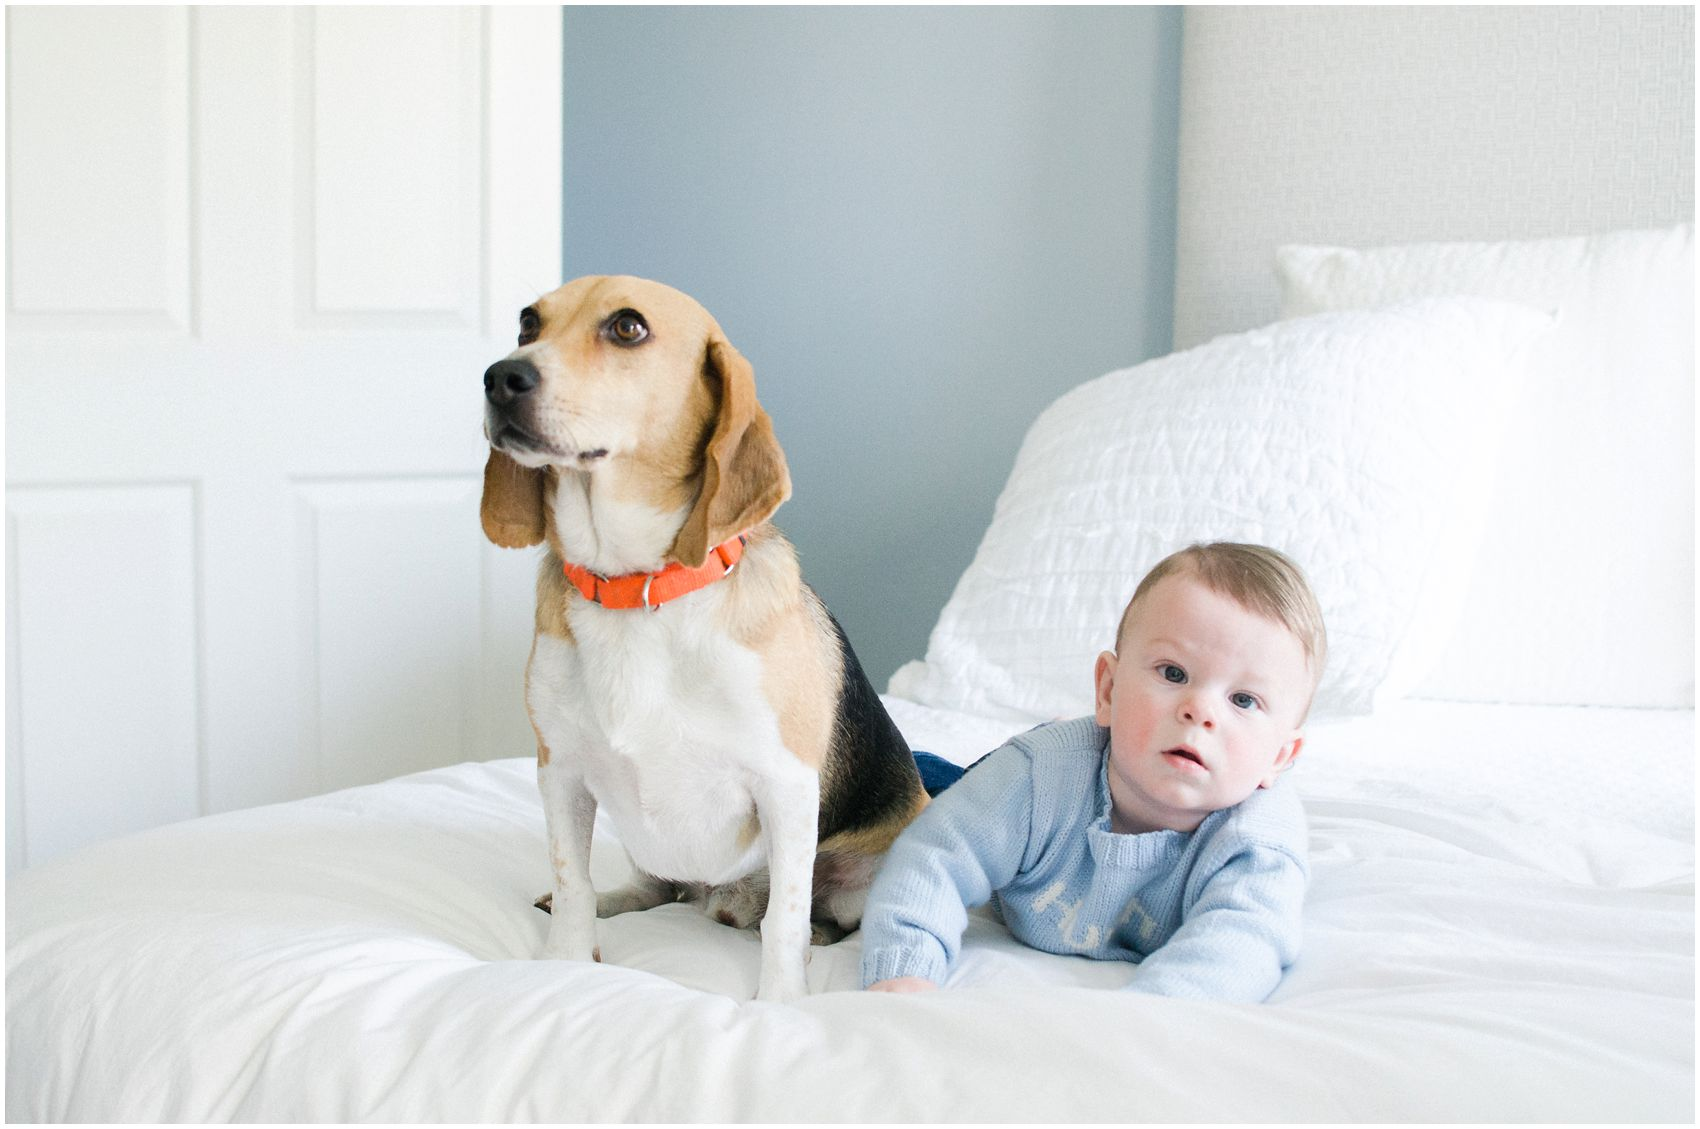 baby and the dog pose as the best friends for a family portrait with pets